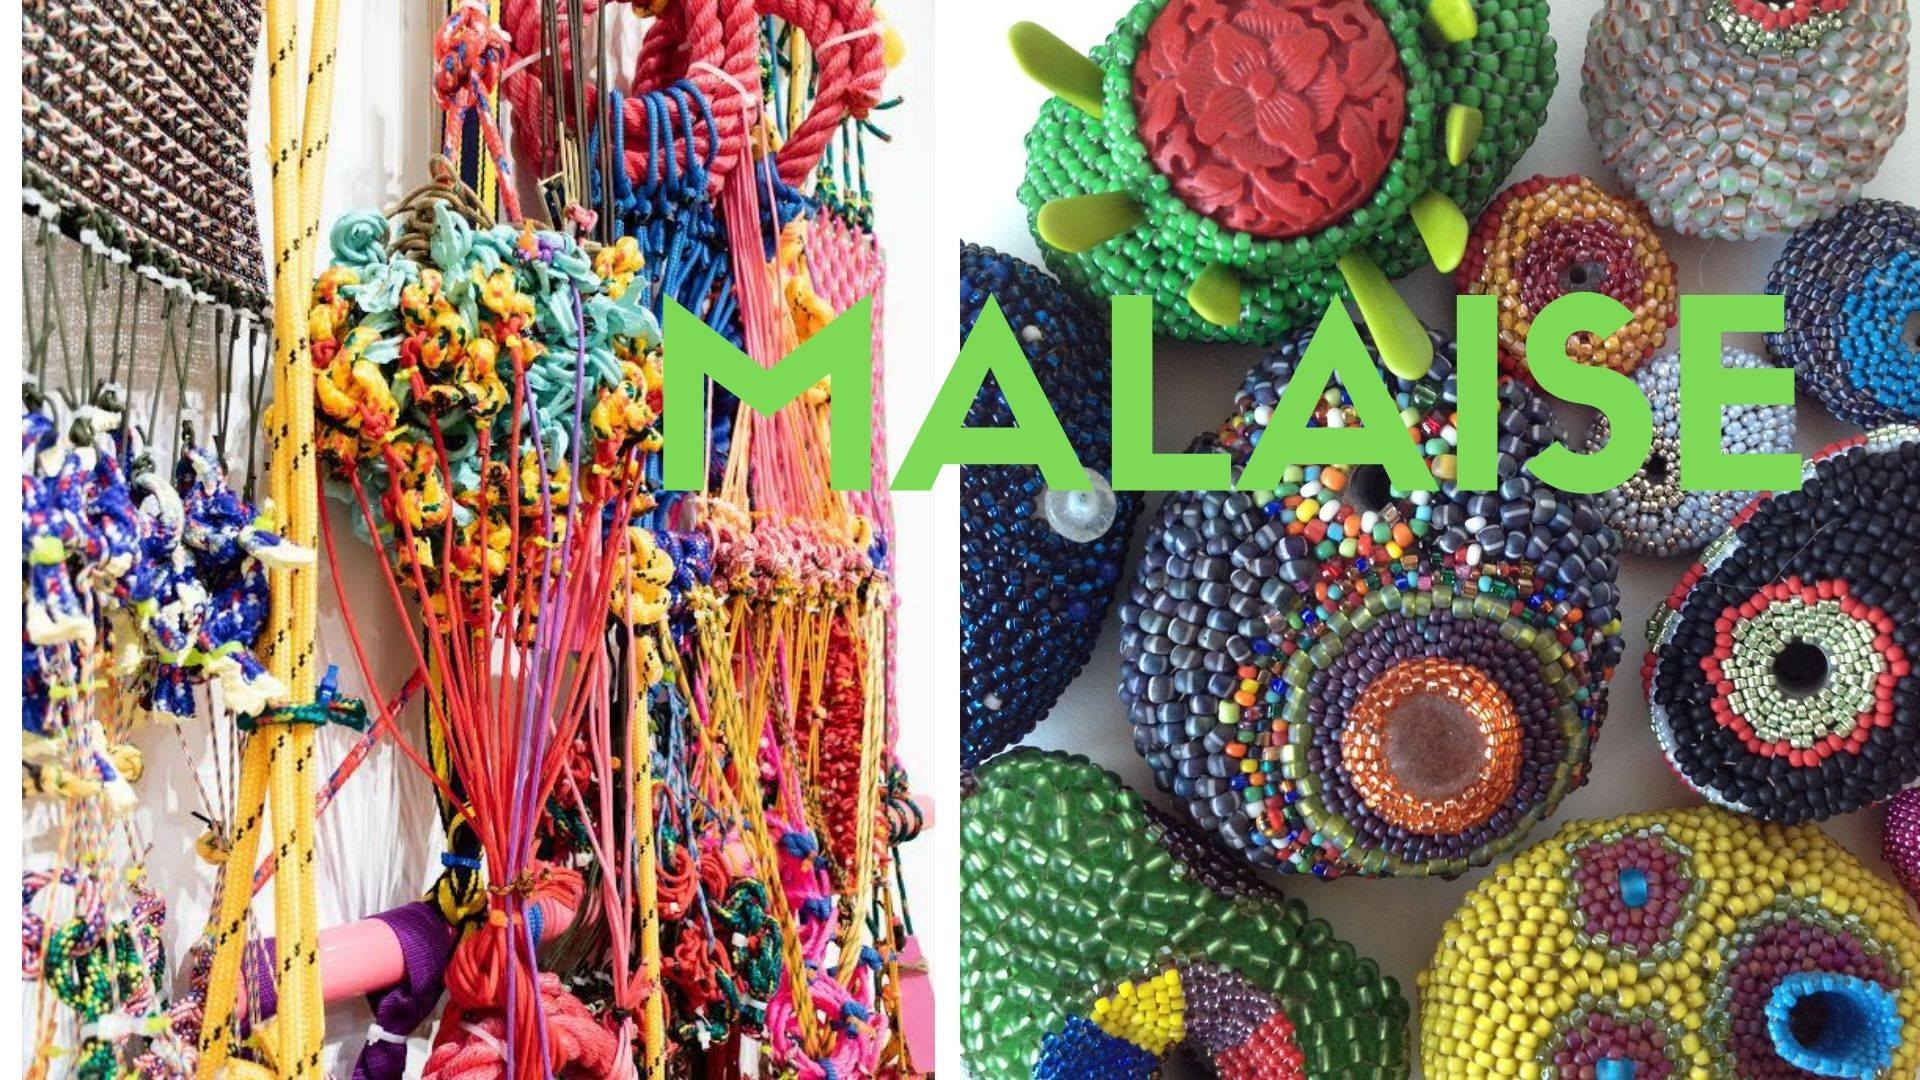 MALAISE-Very colorful works, beaded things and fiber woven things. Abstract.